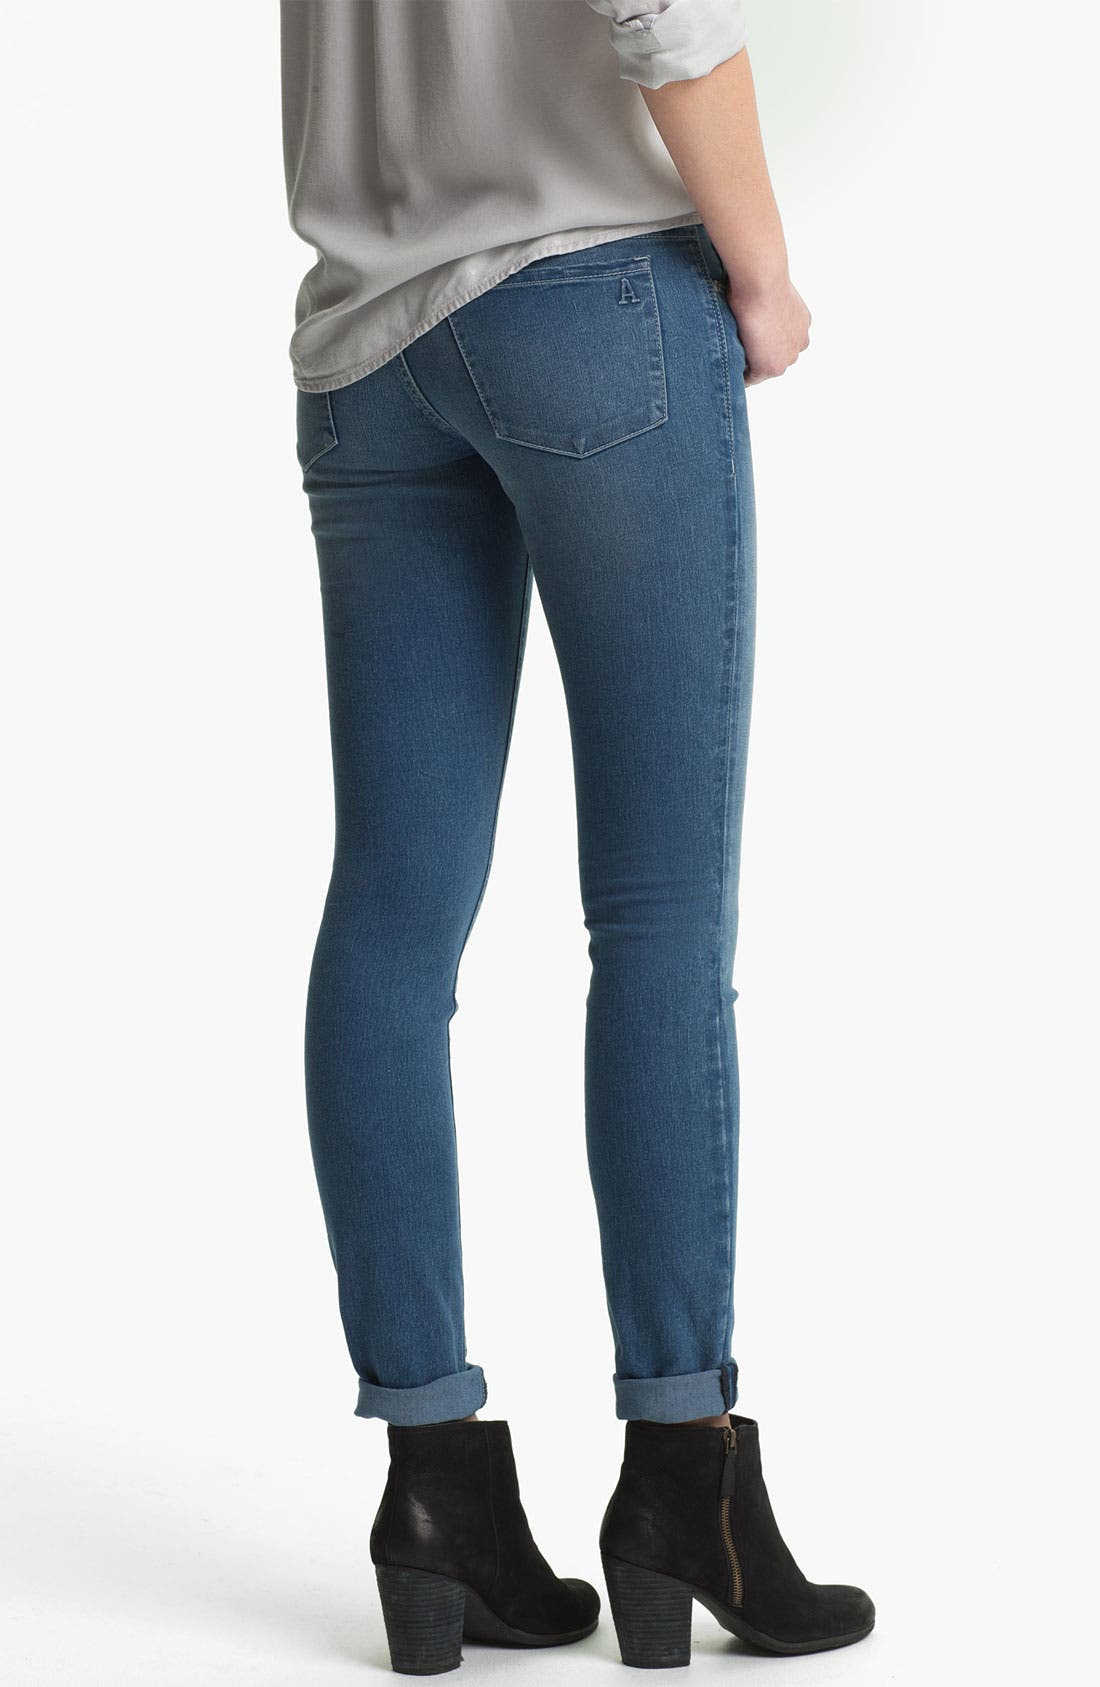 Alternate Image 2  - Articles of Society 'Mya' Skinny Jeans (Atlantic) (Juniors)